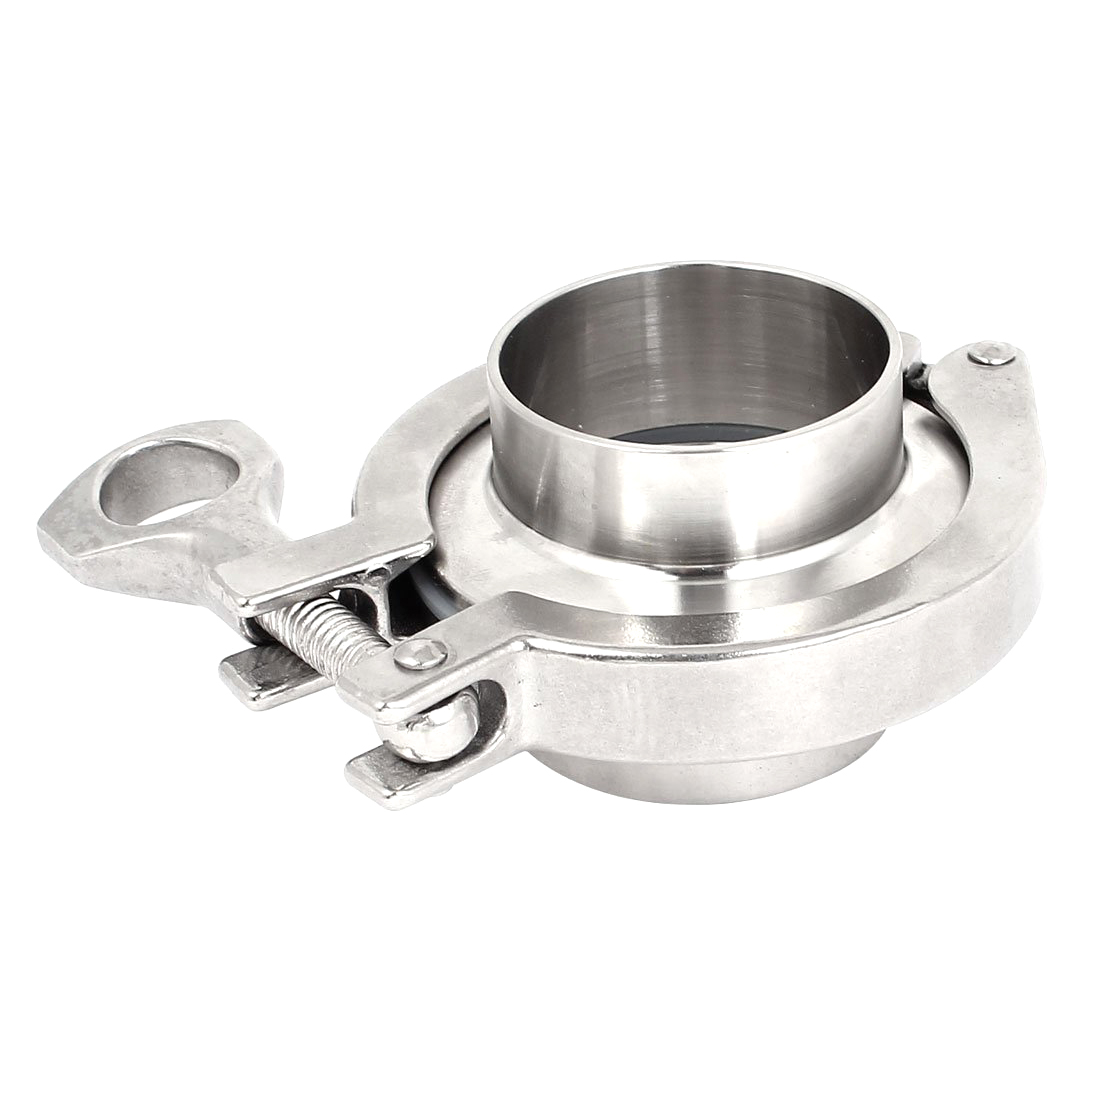 2 Inch Tri Clamp 45mm Pipe OD 304 Stainless Steel Sanitary Pipe Ferrules Gasket Set 64mm Ferrule OD For Homebrew Diary Product